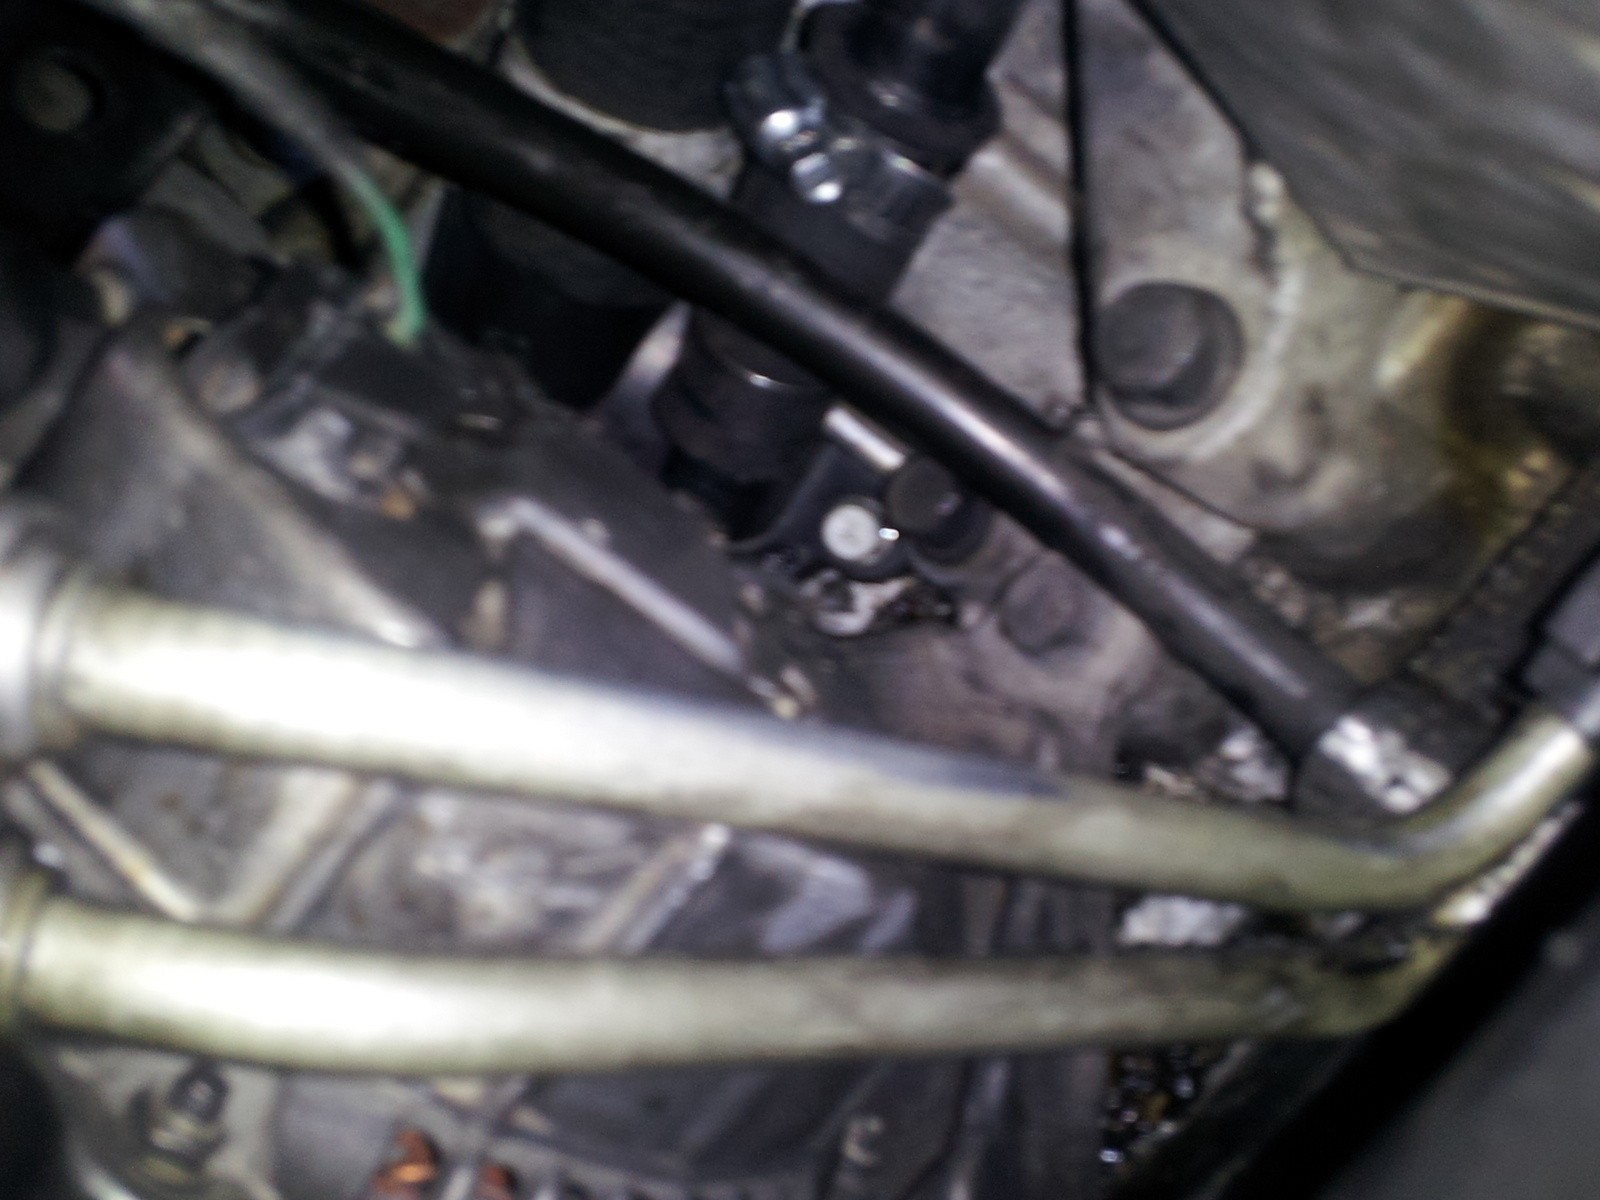 2004 Chrysler Sebring Engine Diagram Dodge Intrepid Questions 2 7 Engine Have A Little Hole that Keeps Of 2004 Chrysler Sebring Engine Diagram